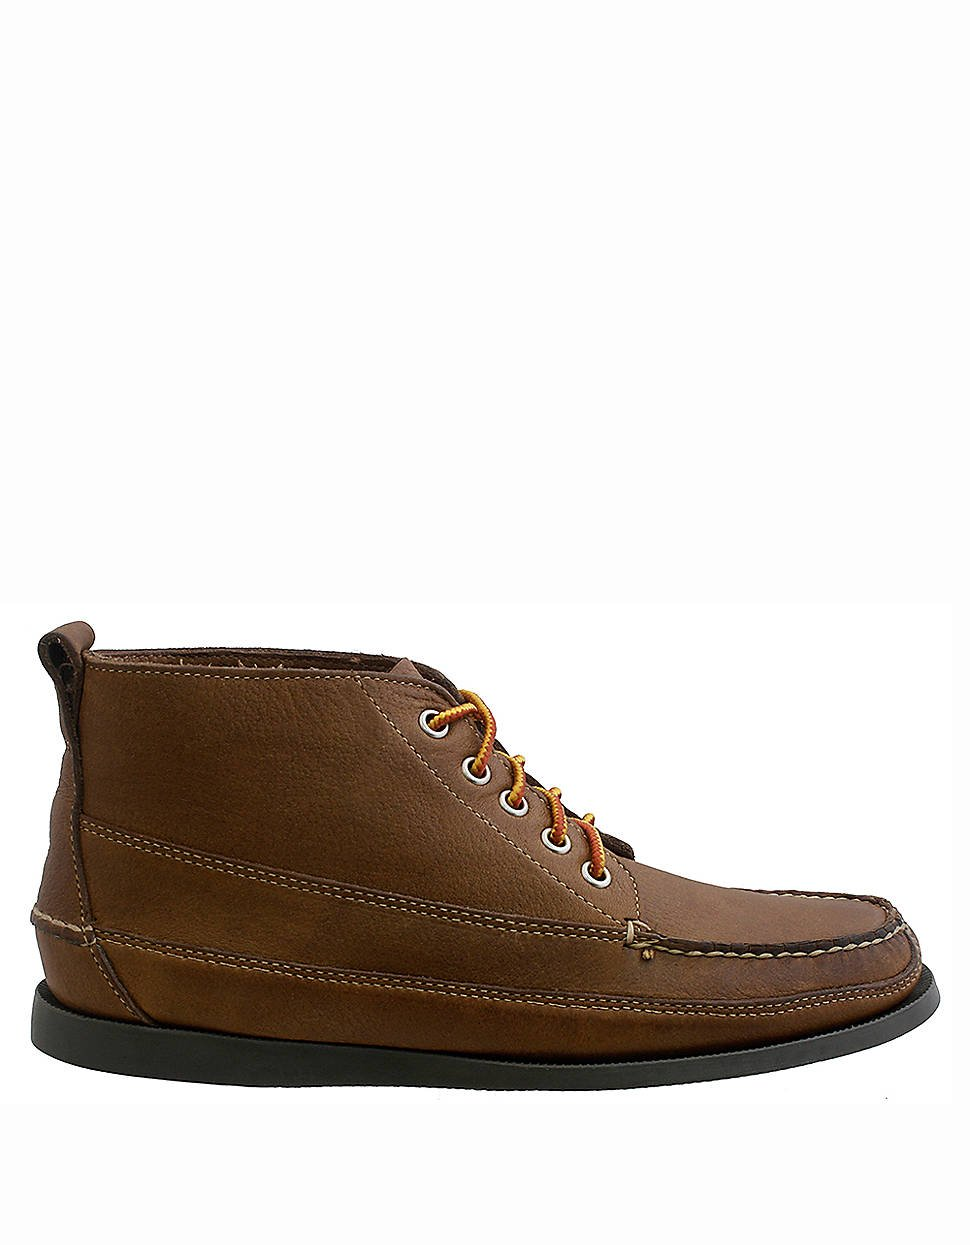 g h bass co carlton leather chukka boots in brown for